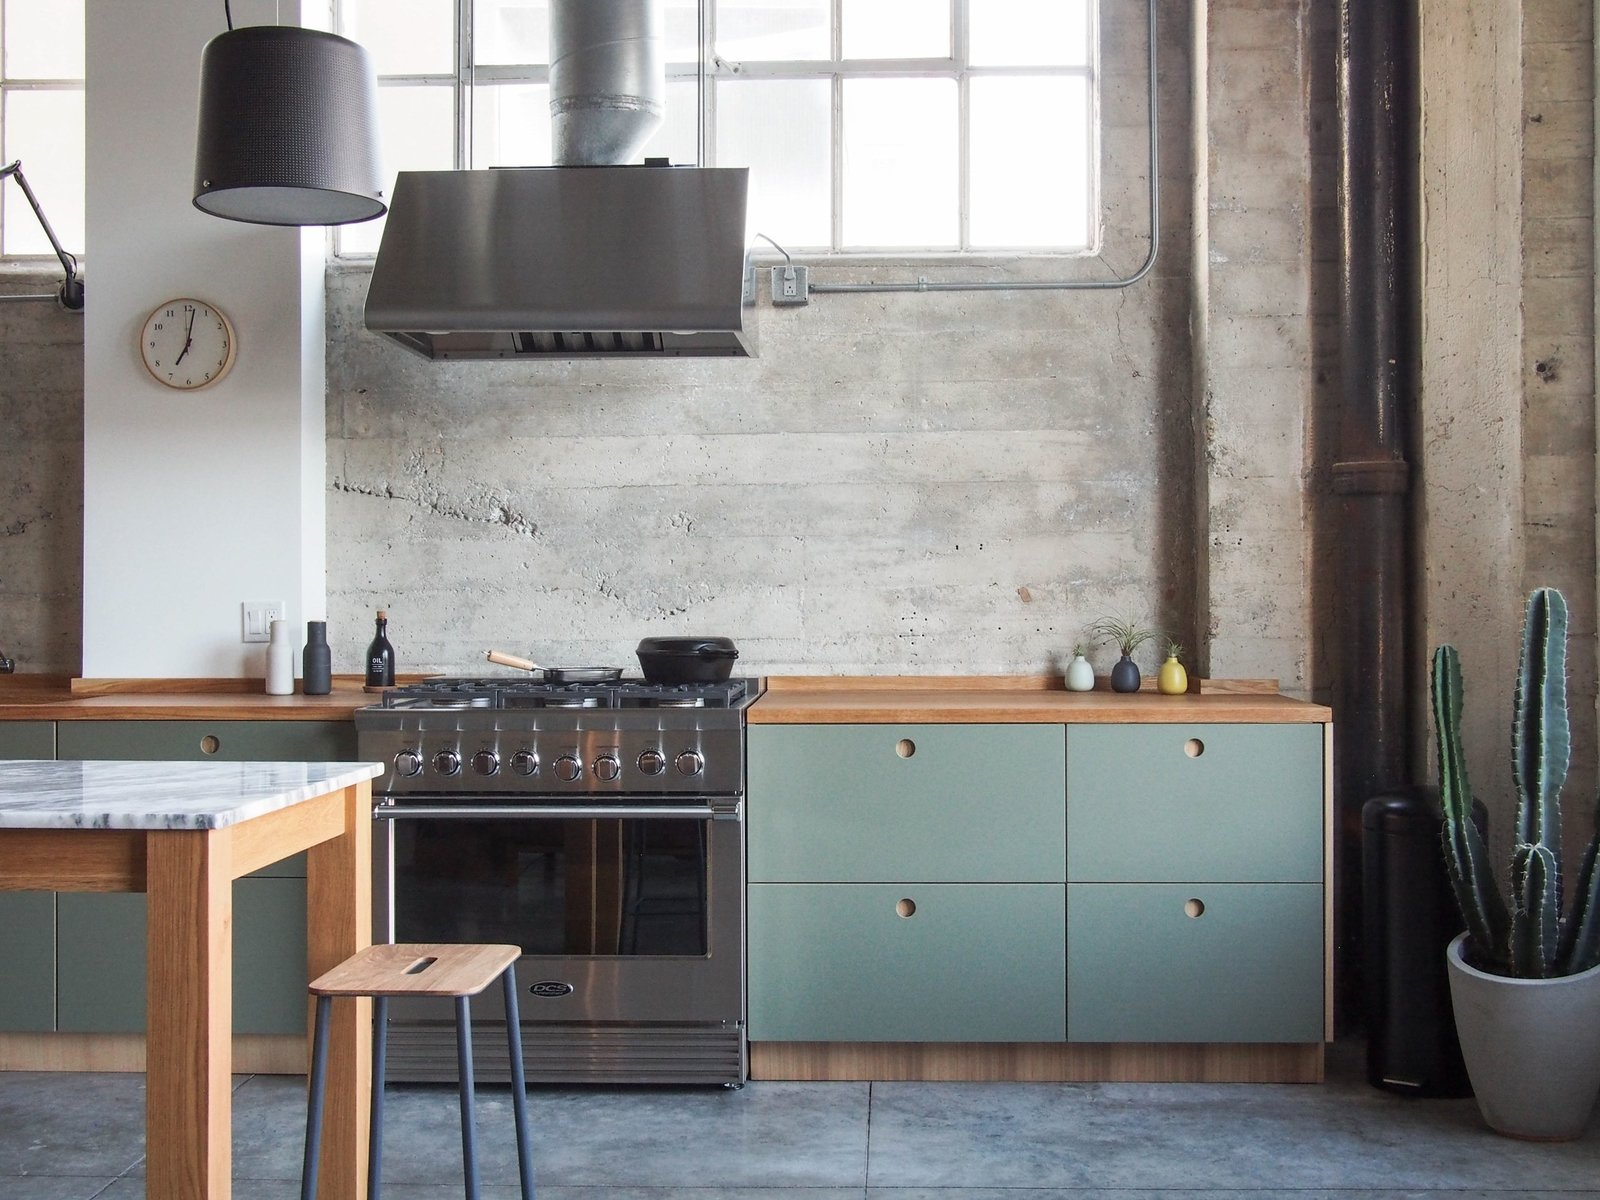 modern kitchen upgrade ideas from a danish design firm thats challenging the kitchen market